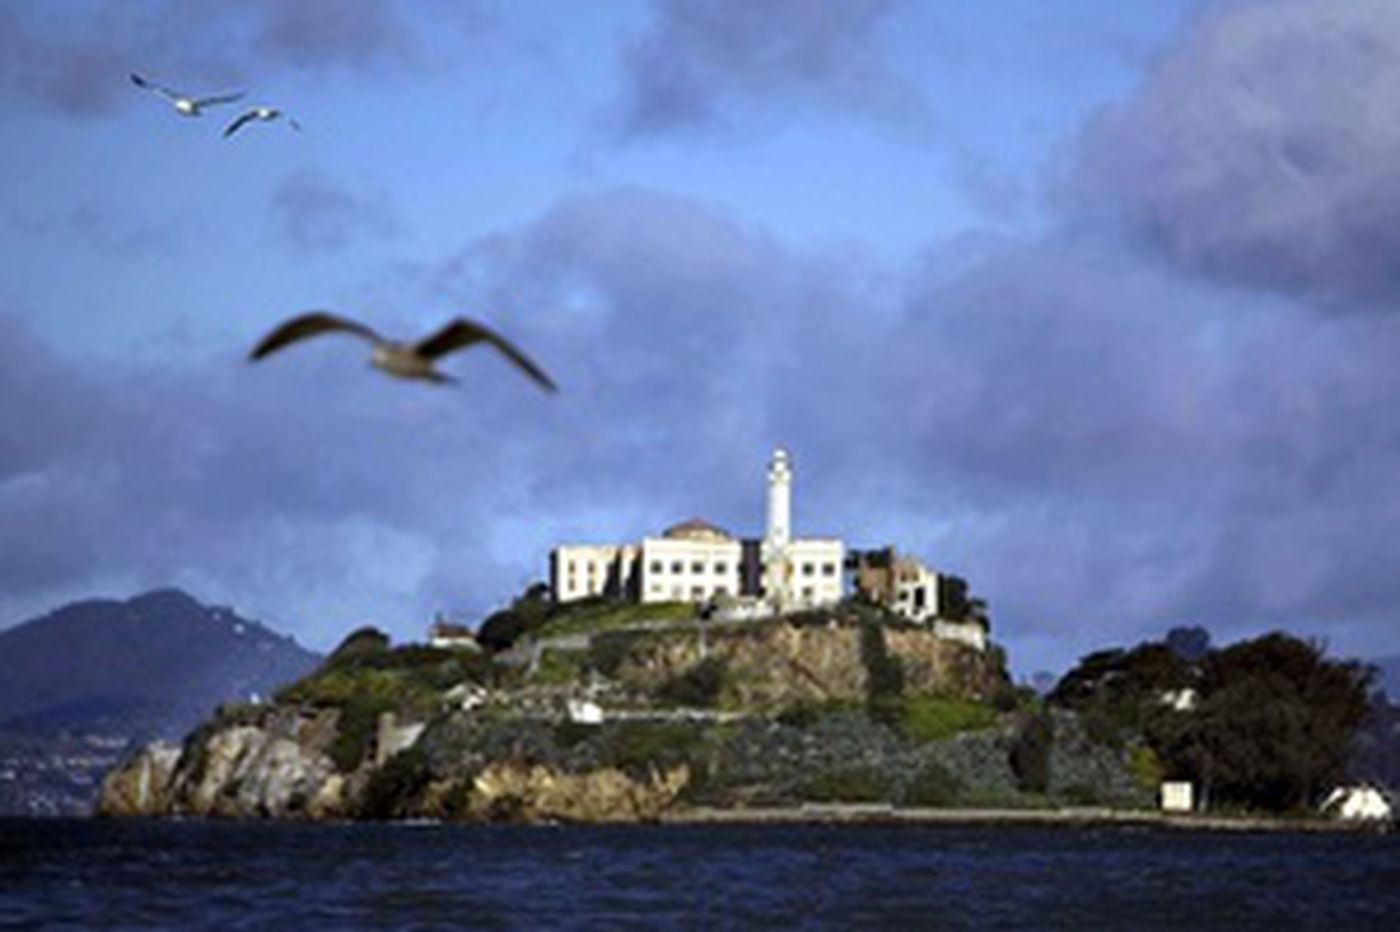 The watchman of Alcatraz escapes at the end of each shift